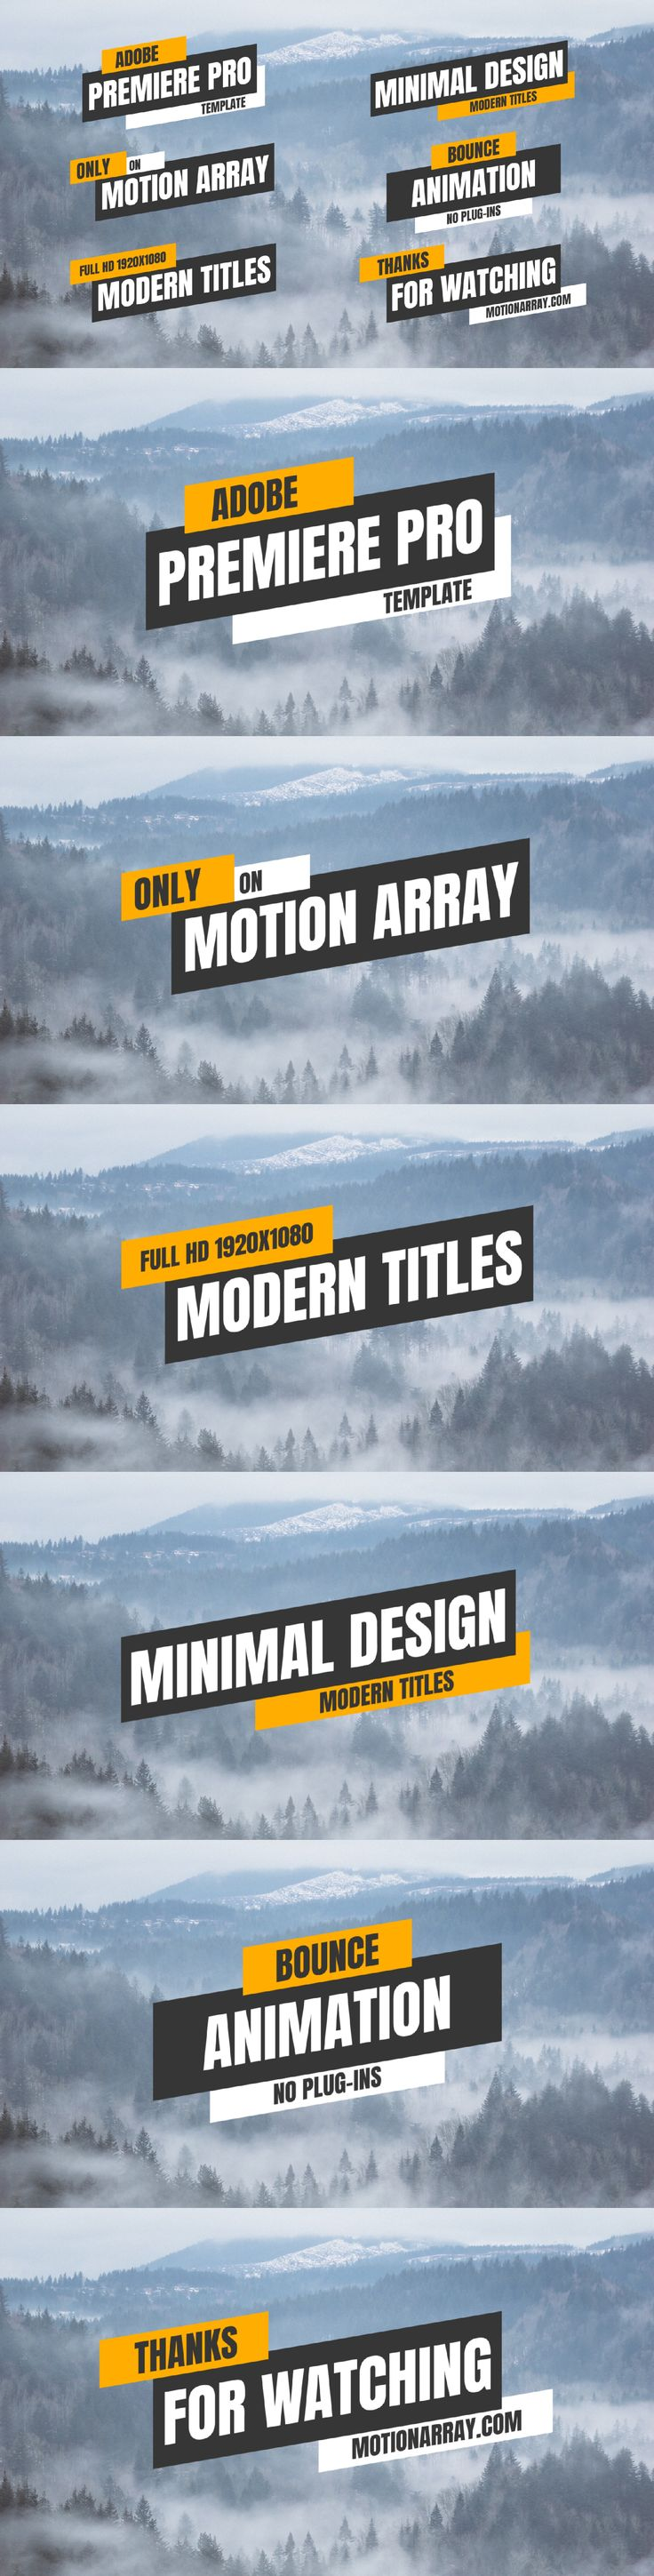 91 best typography images on Pinterest | Charts, Layout design and ...